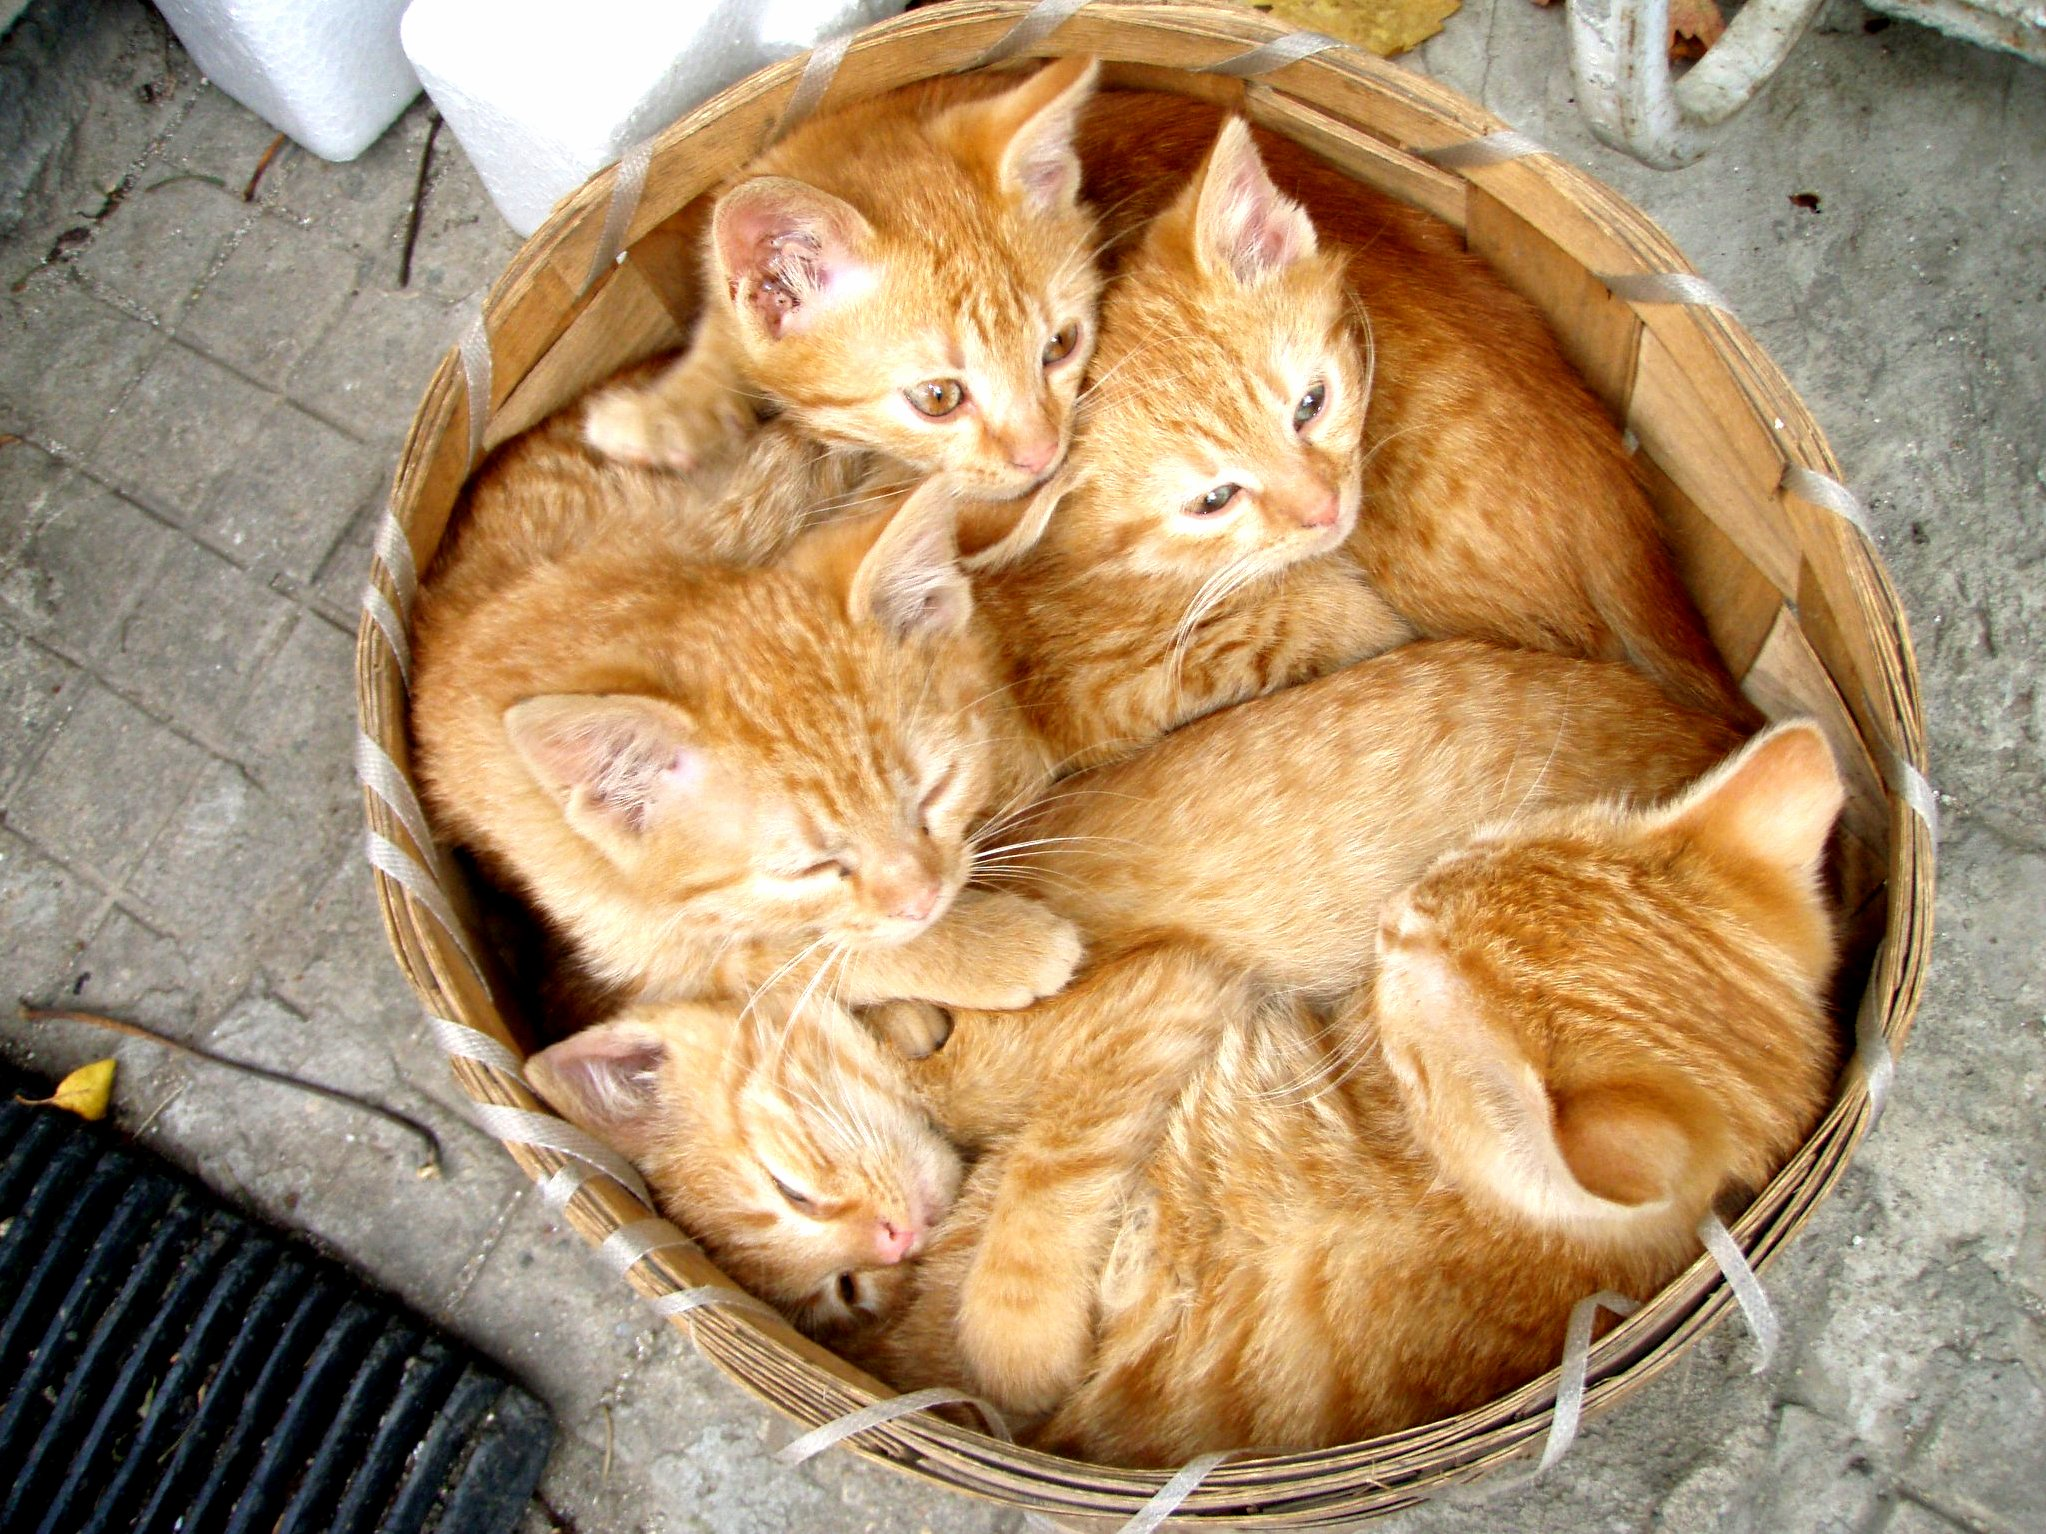 So showed me this ginger kitty harvest he had a few years ago